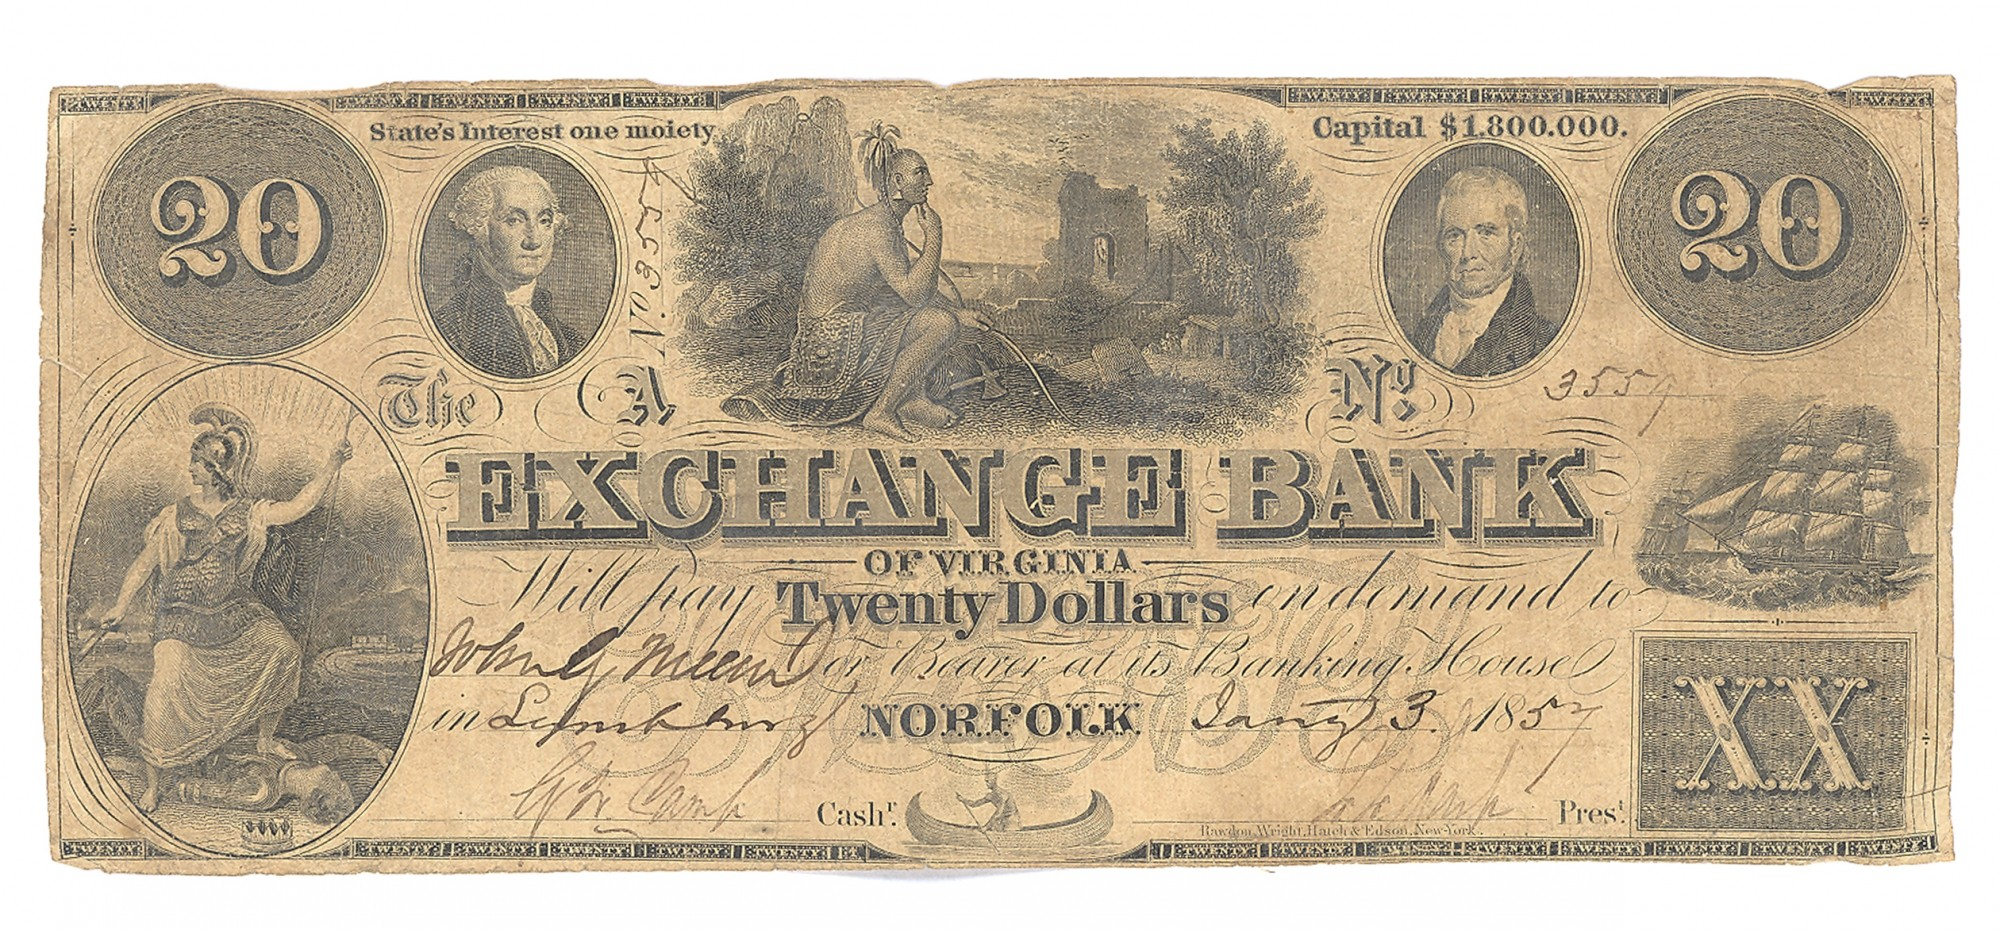 EXCHANGE BANK OF VIRGINIA, NORFOLK, VIRGINIA $20 NOTE